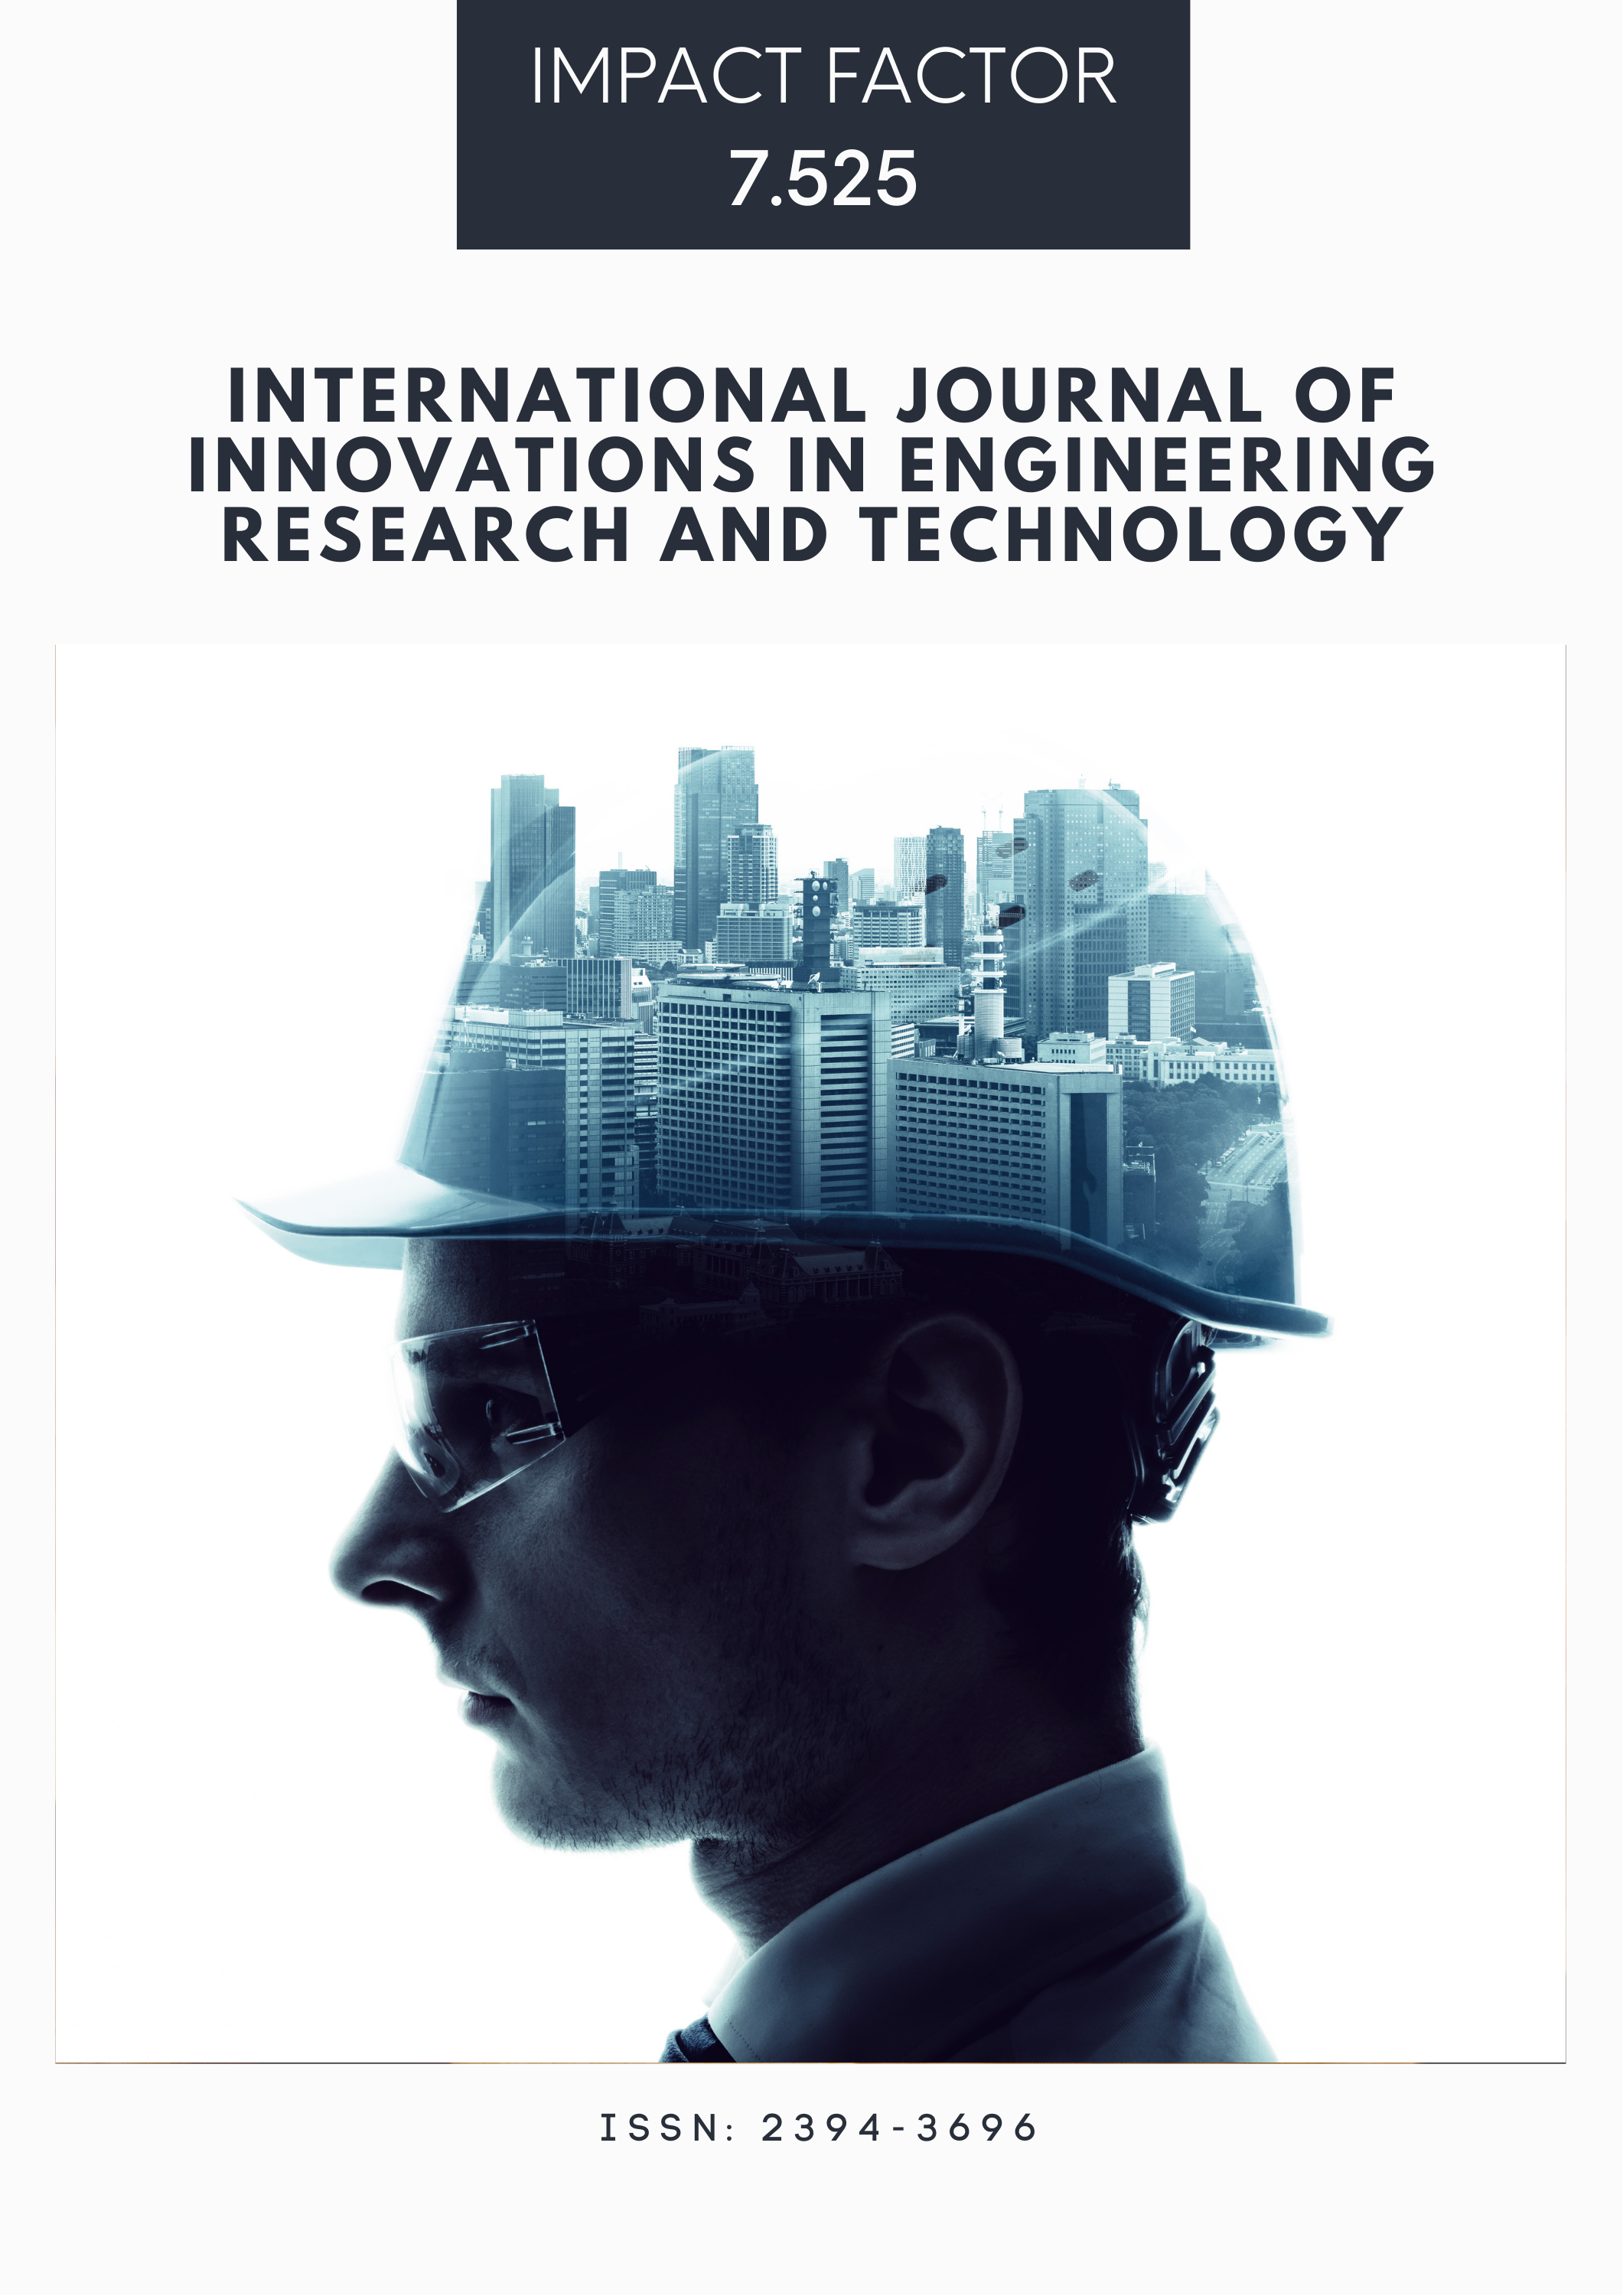 International Journal of Innovations in Engineering Research and Technology